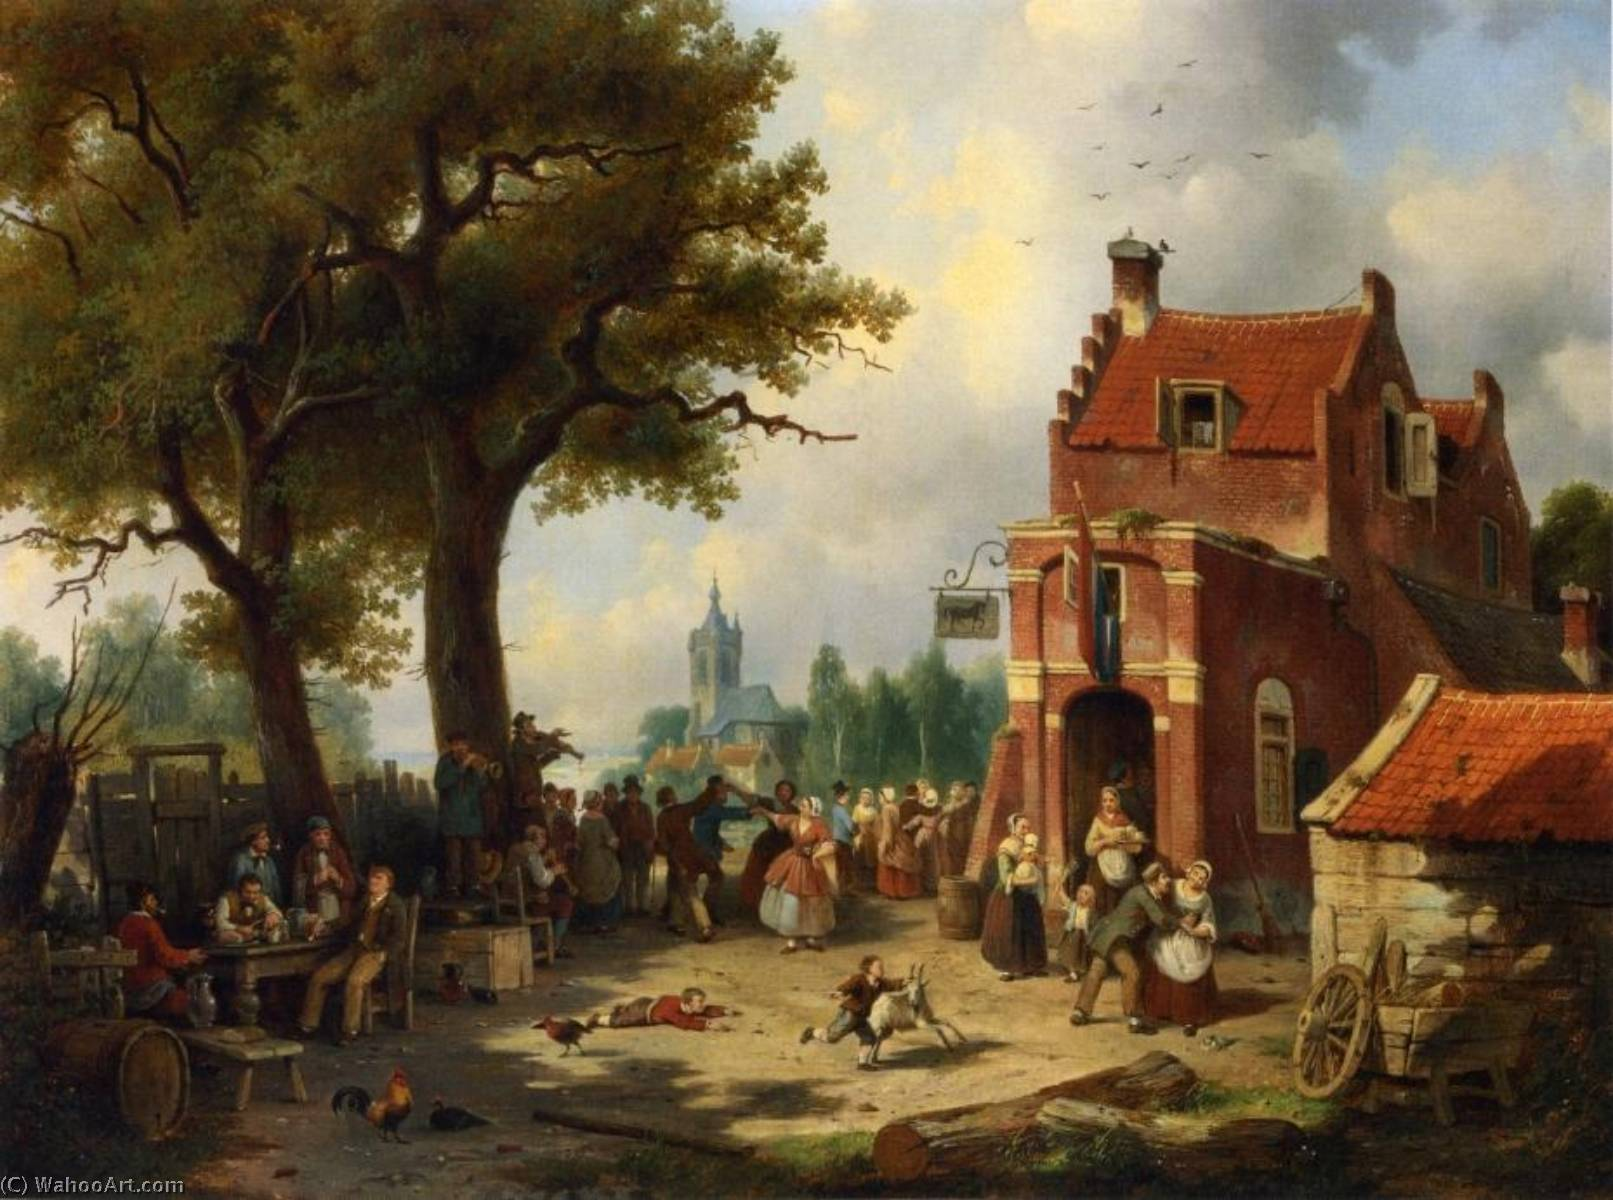 Buy Museum Art Reproductions | Festivities outside the Inn, 1862 by Jacques François Carabain (1834-1933) | WahooArt.com